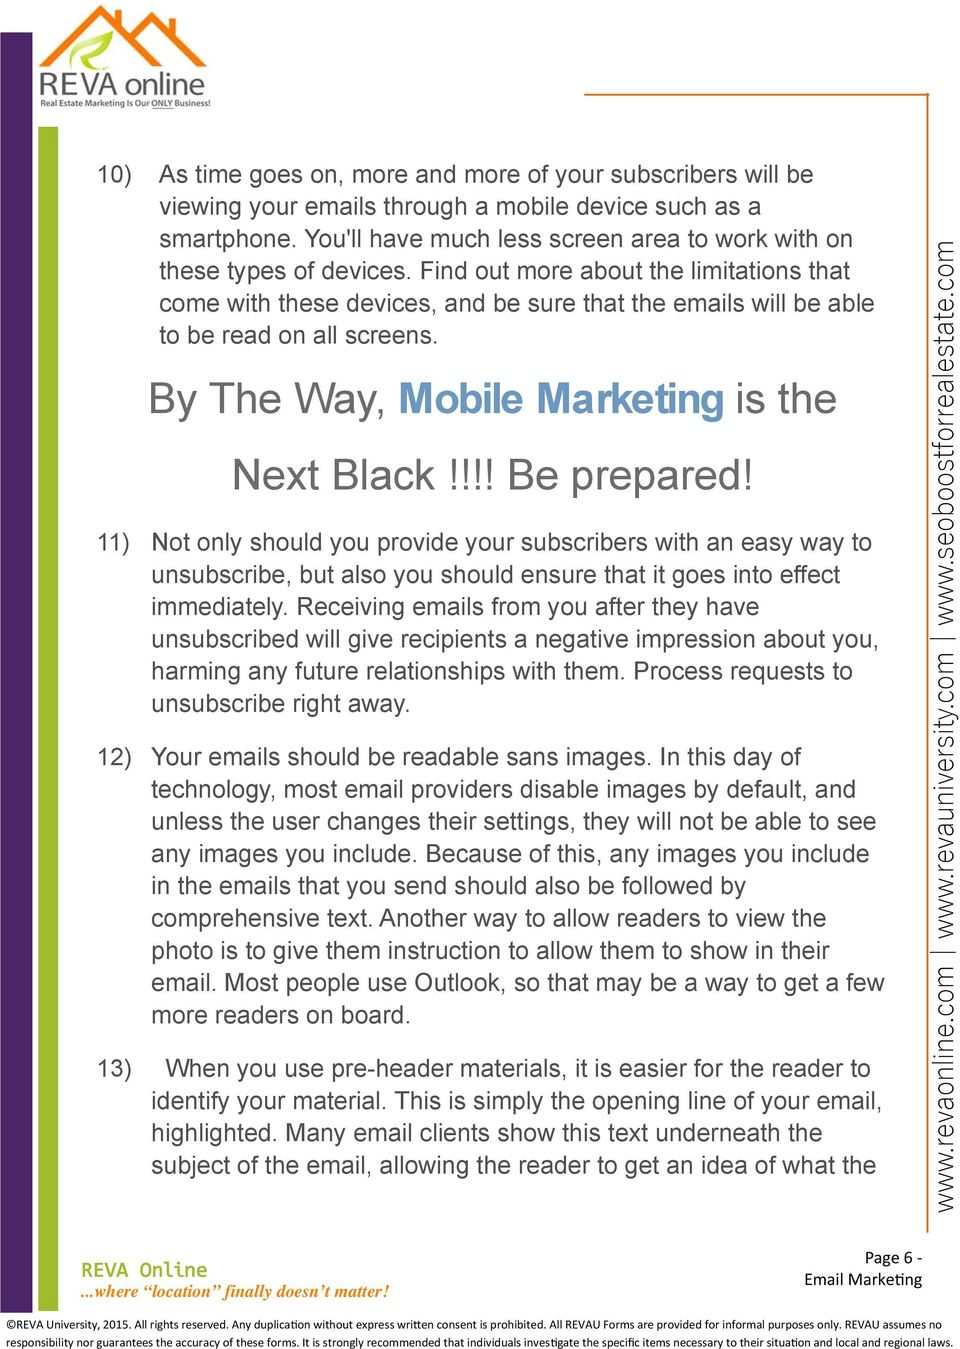 Find out more about the limitations that come with these devices, and be sure that the emails will be able to be read on all screens. By The Way, Mobile Marketing is the Next Black!!!! Be prepared!